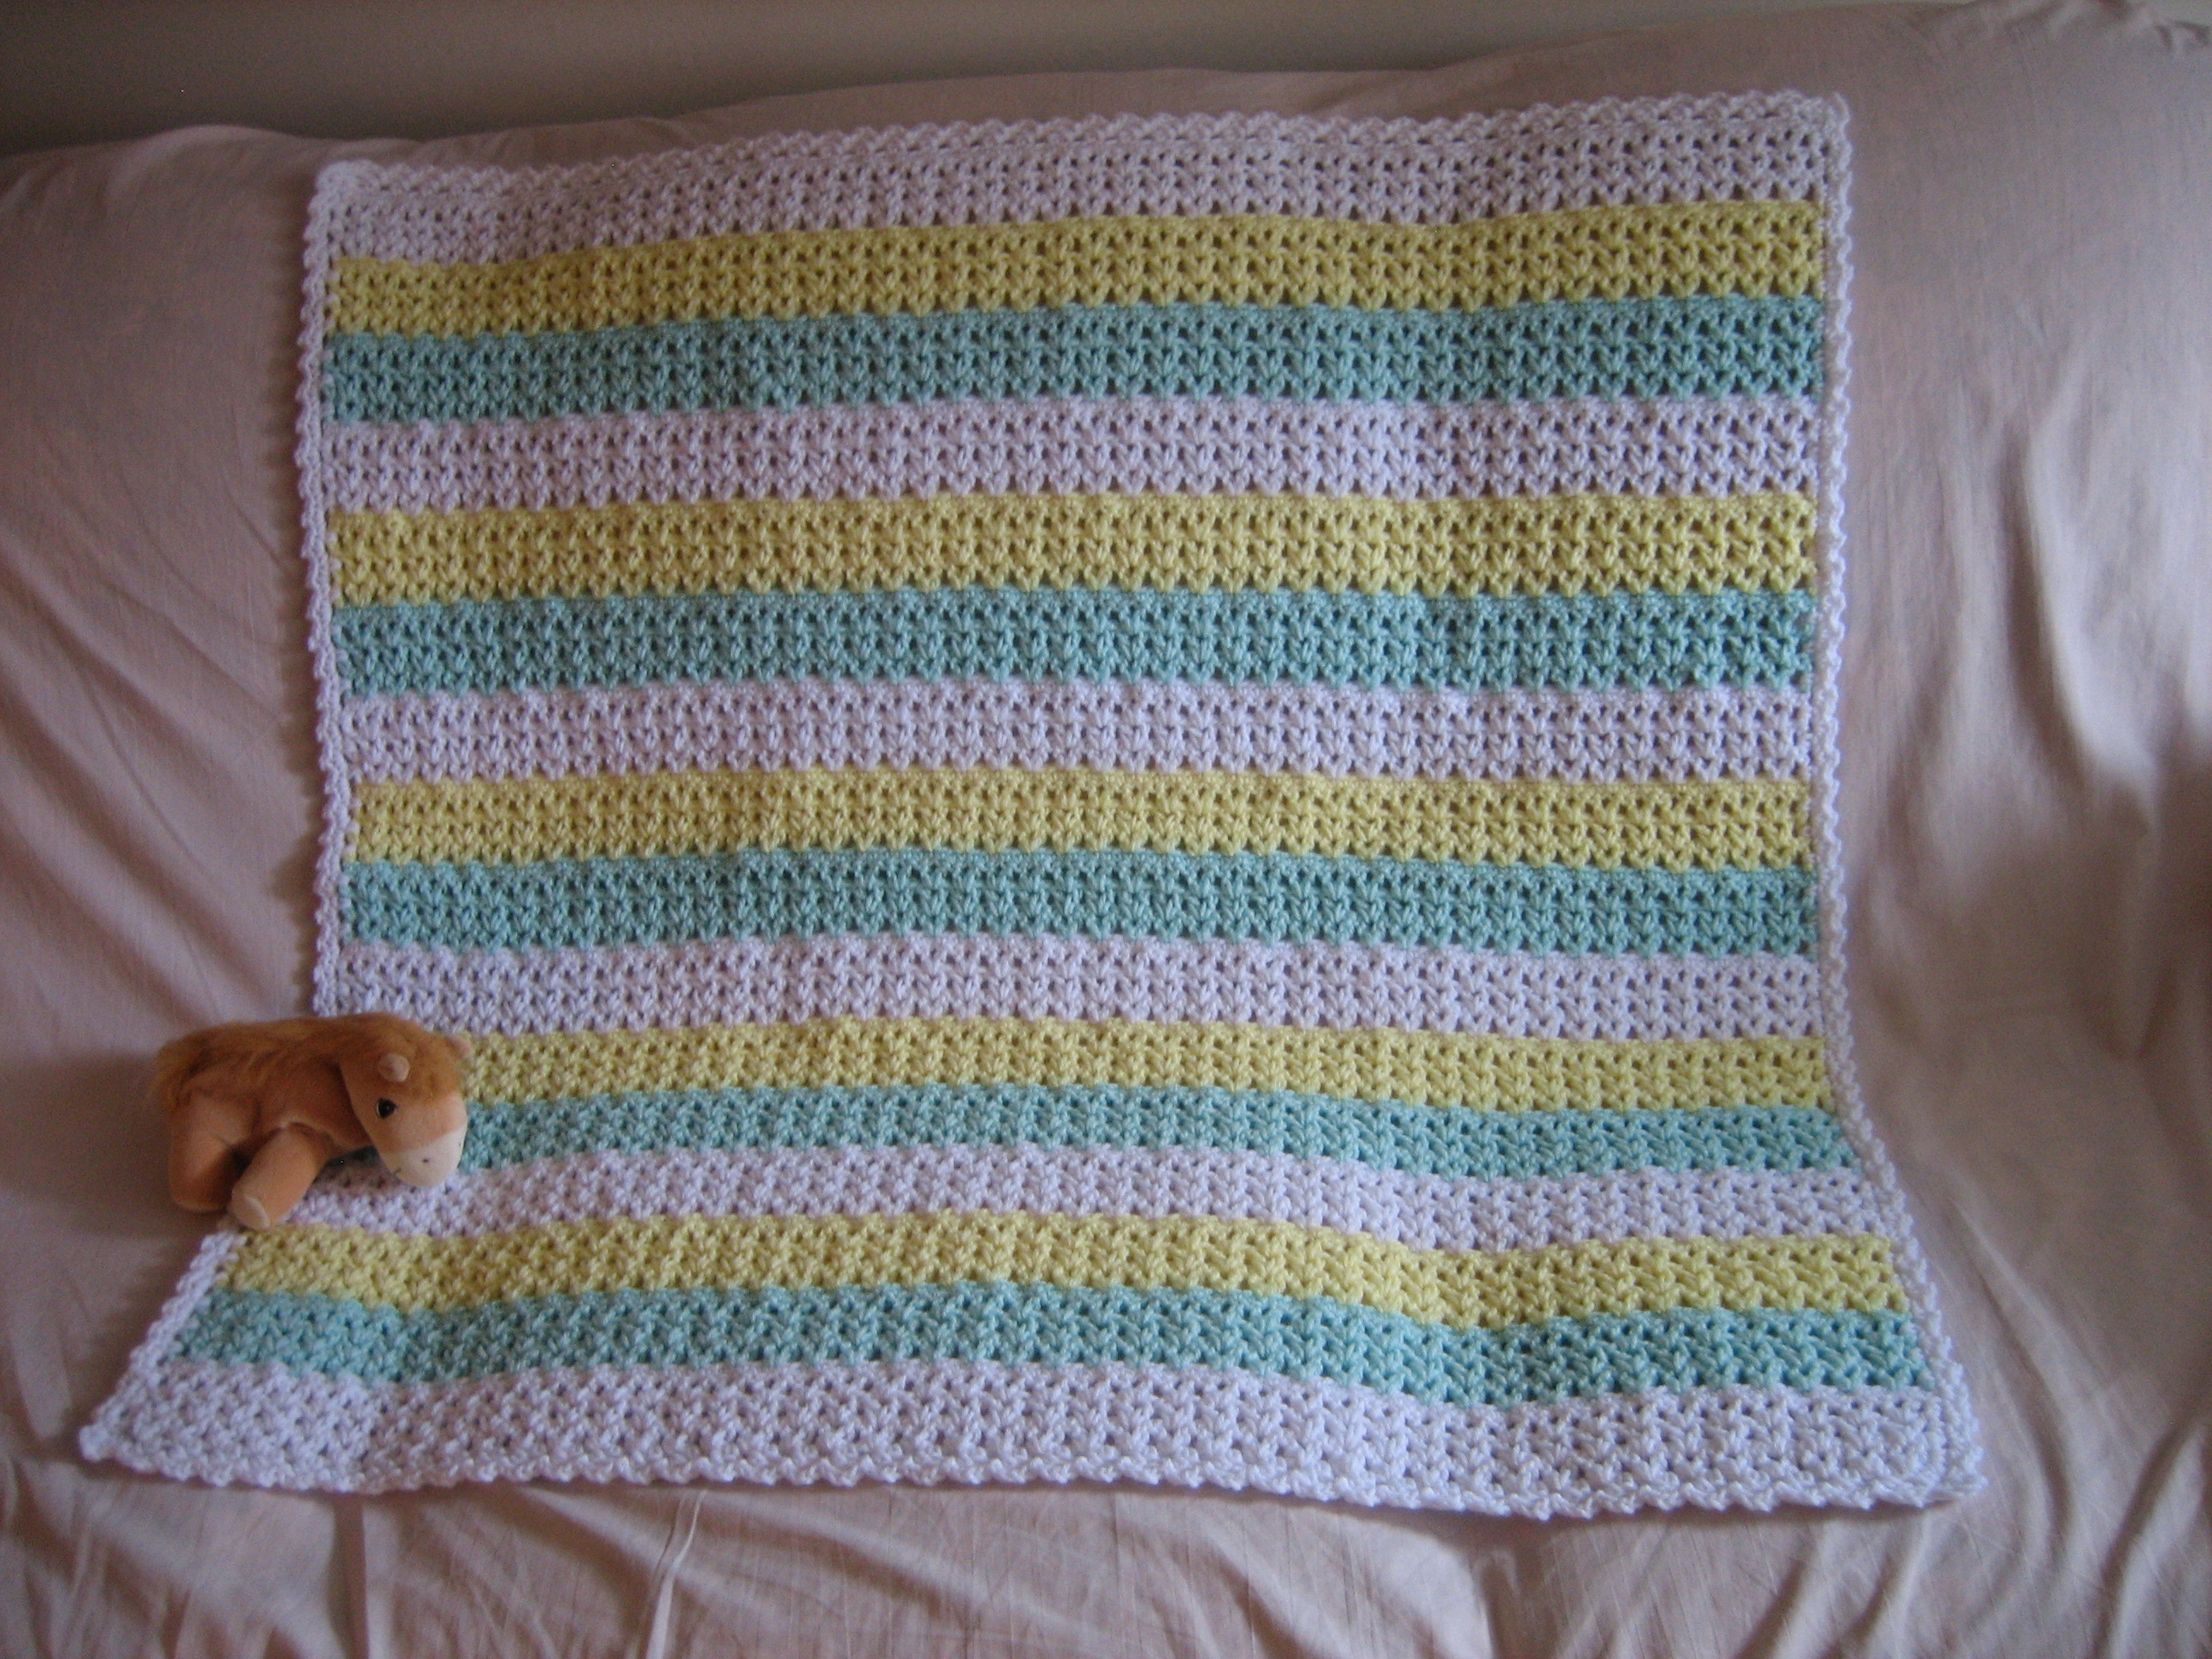 Crochet Baby Blanket Patterns Fresh Striped Crochet Afghan Of Fresh 44 Models Crochet Baby Blanket Patterns